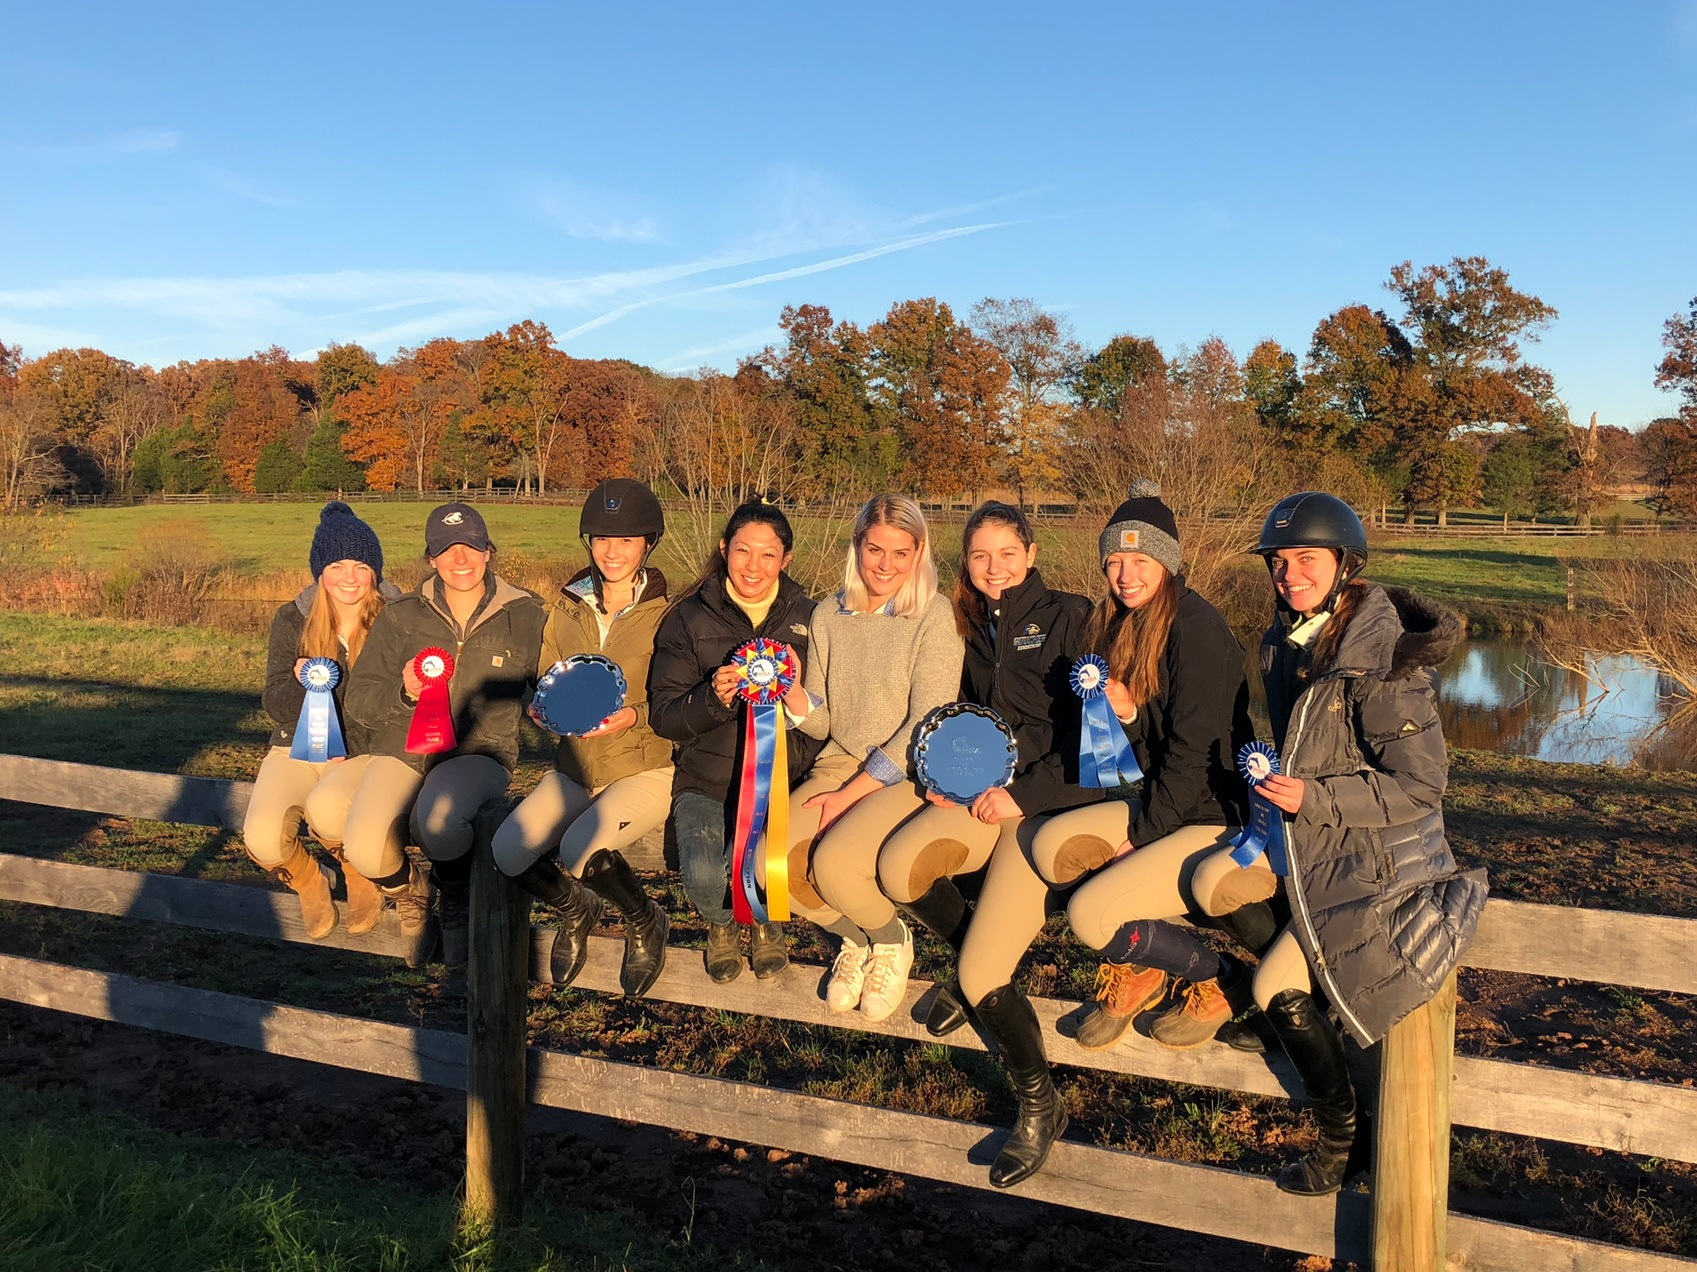 Equestrian Leads Region By 35 Points After Second Day of IHSA Show